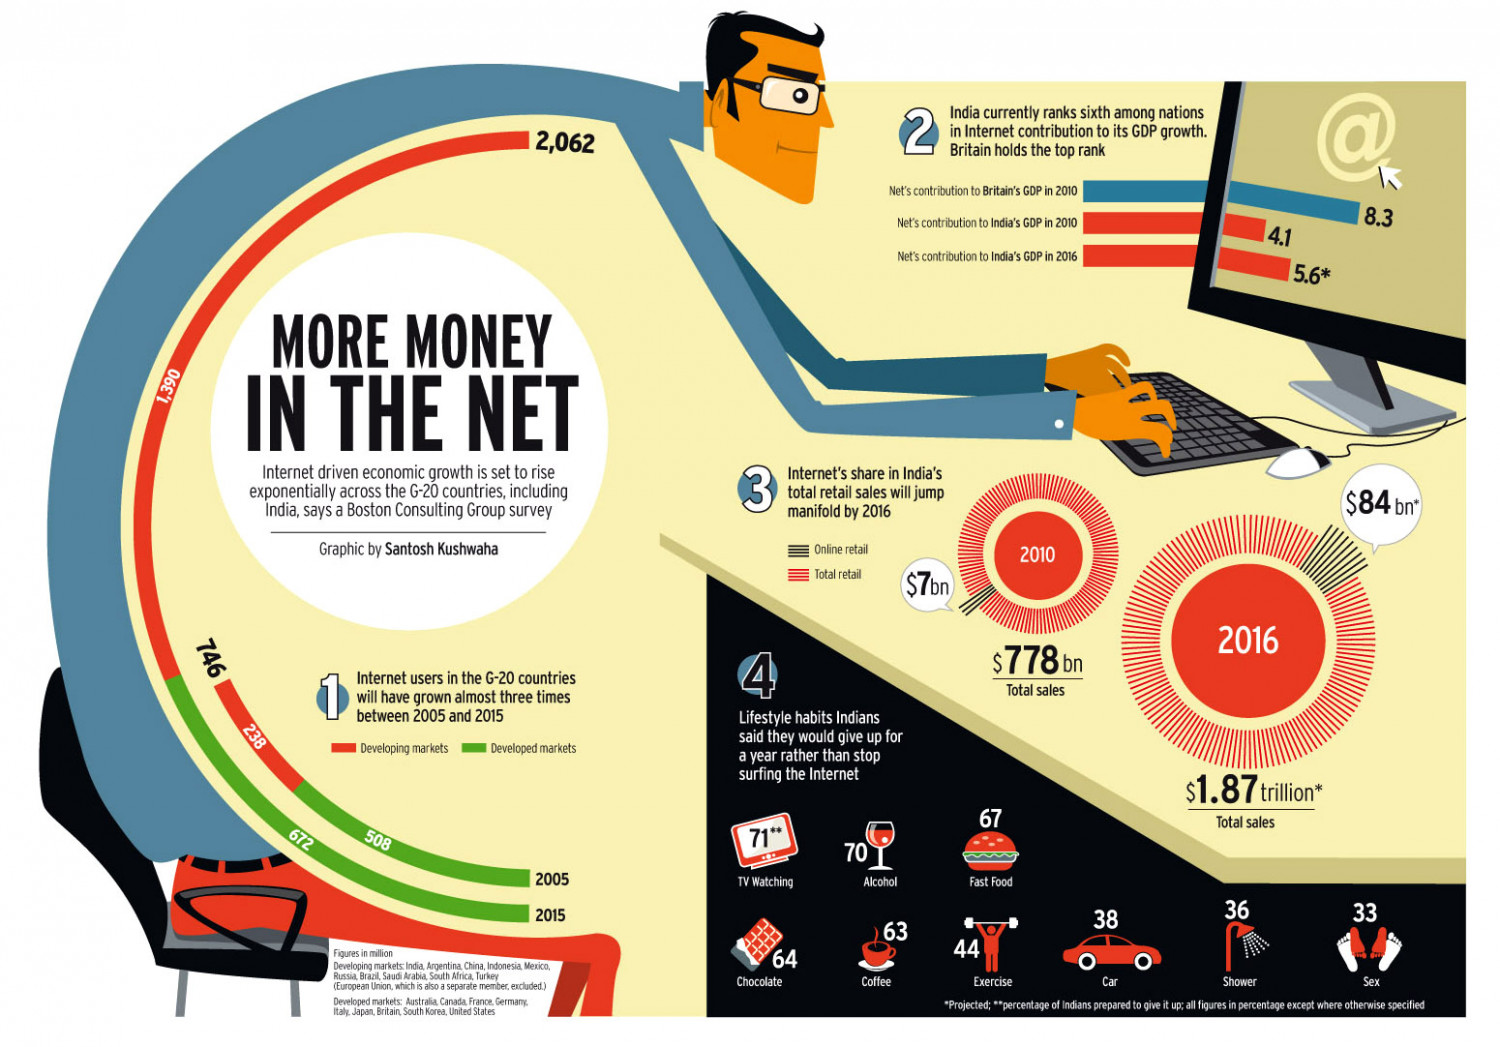 MORE MONEY IN THE NET Infographic